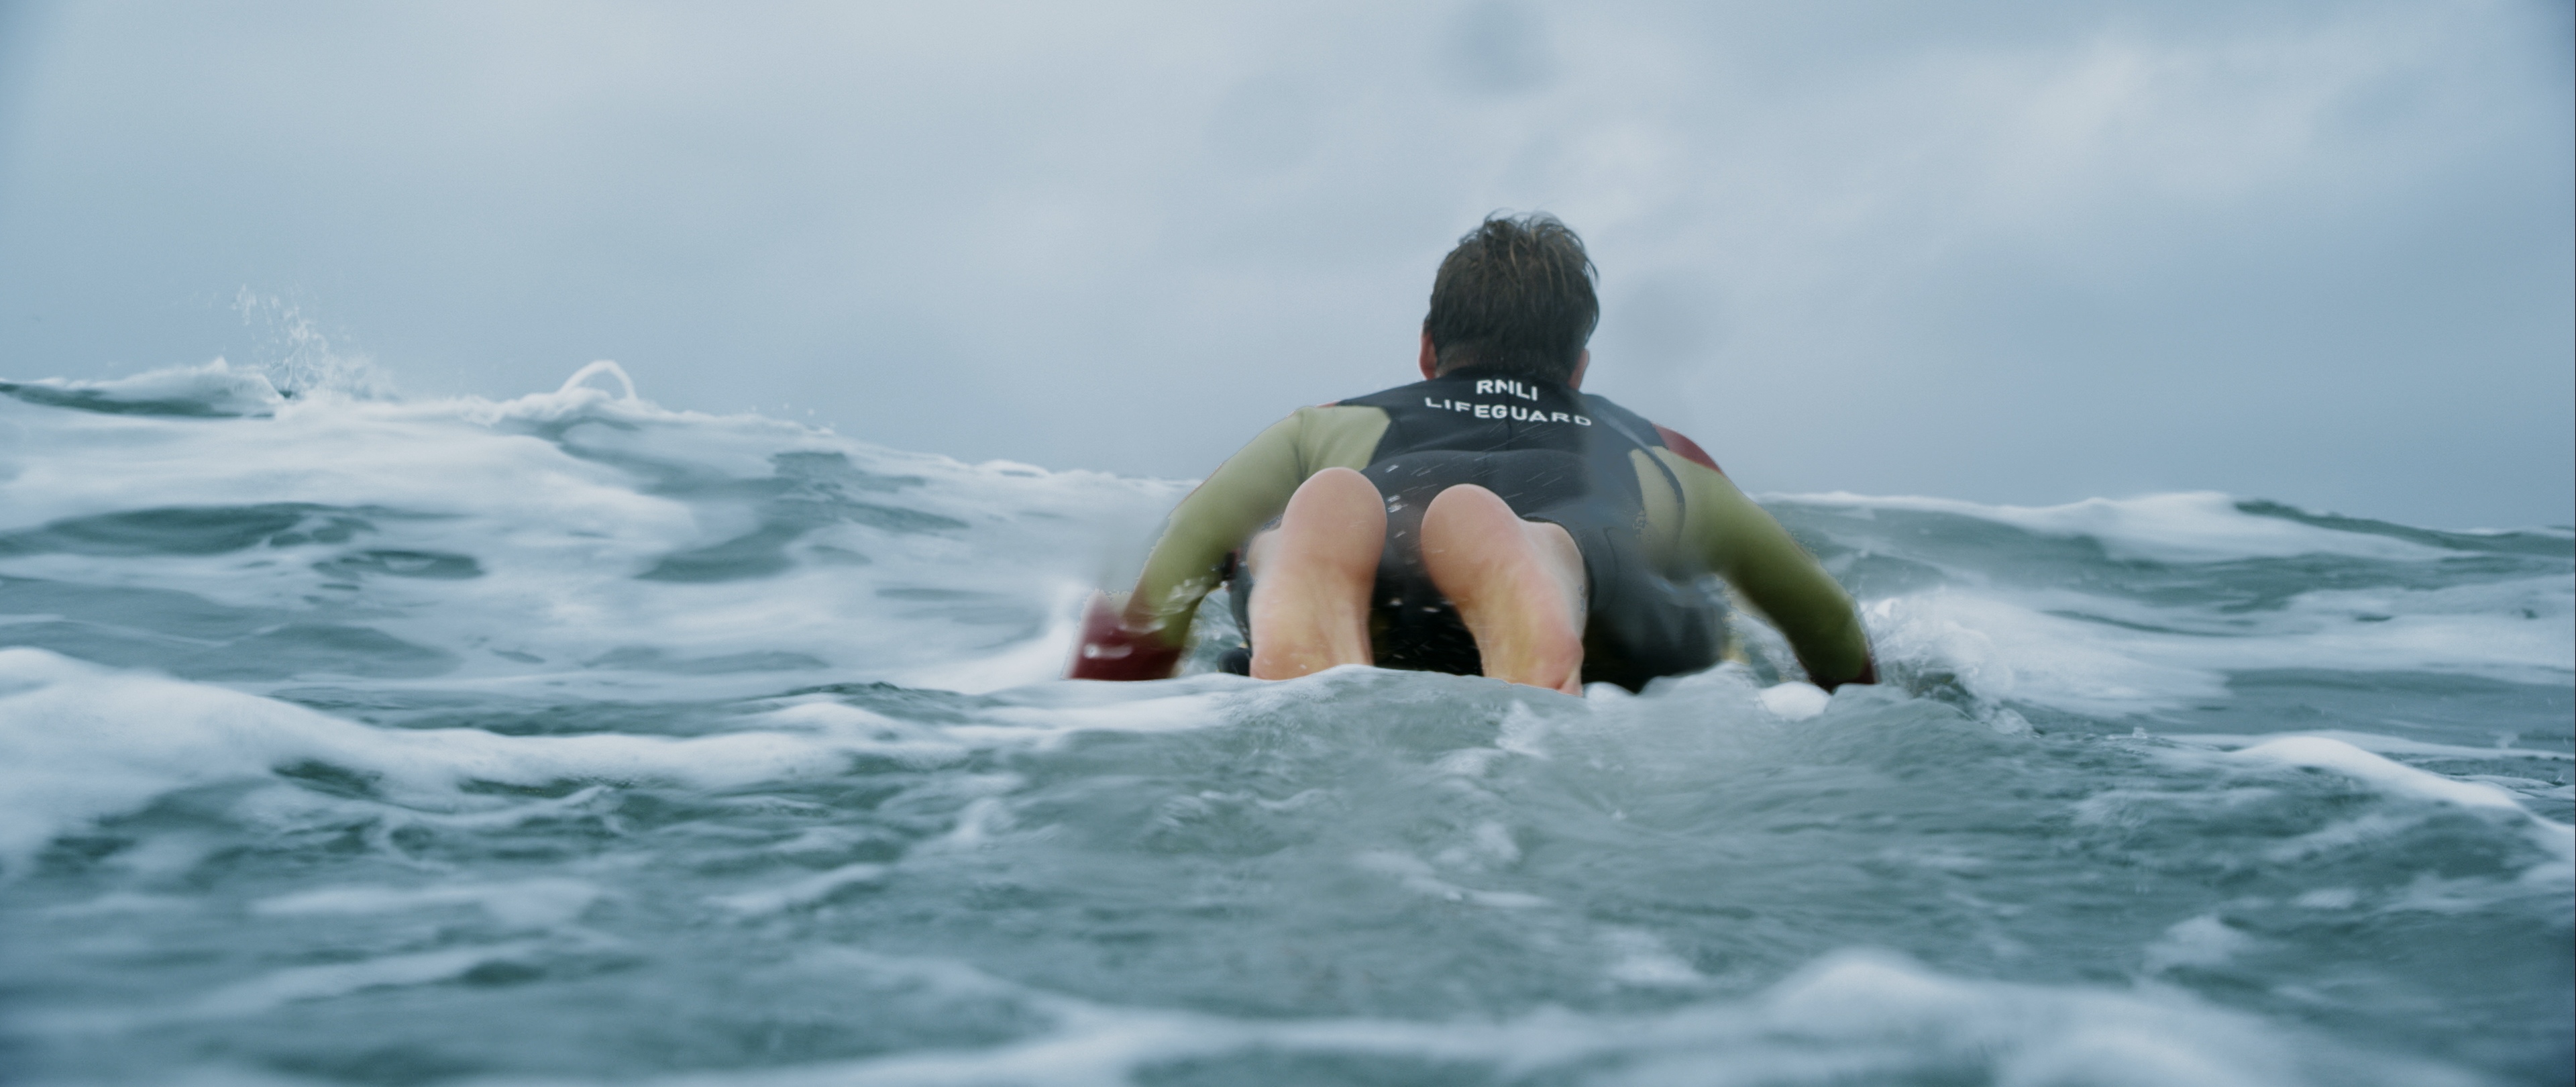 New RNLI Charity Campaign is an Ode to Saving Lives at Sea